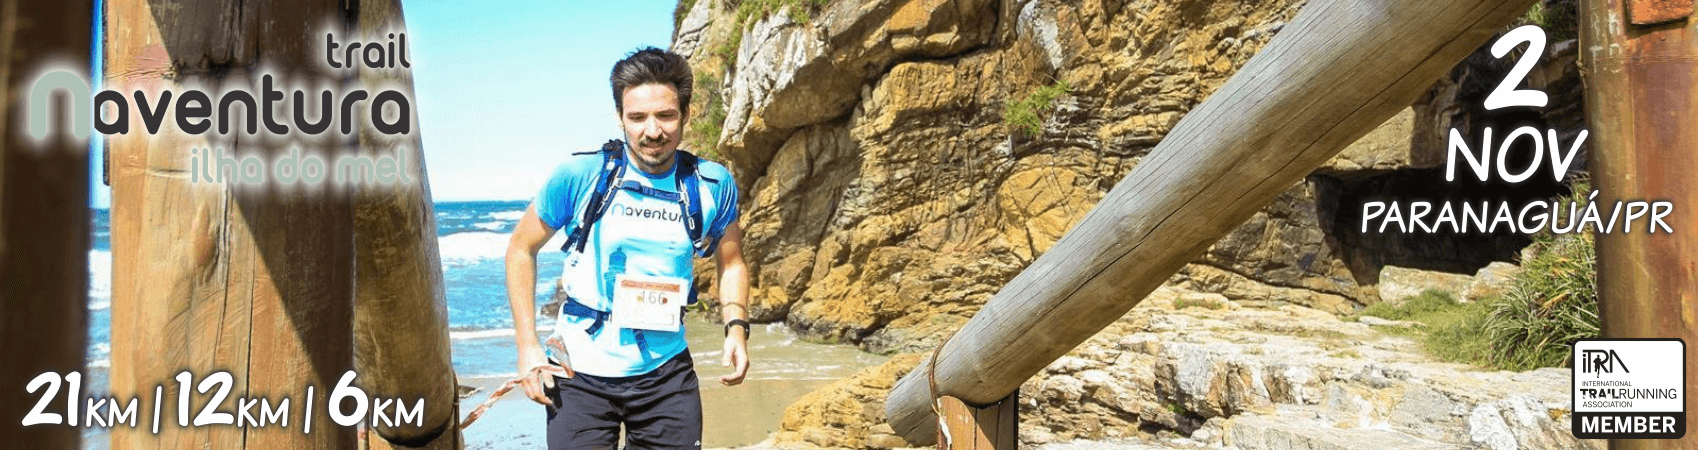 NAVENTURA TRAIL ILHA DO MEL 2019